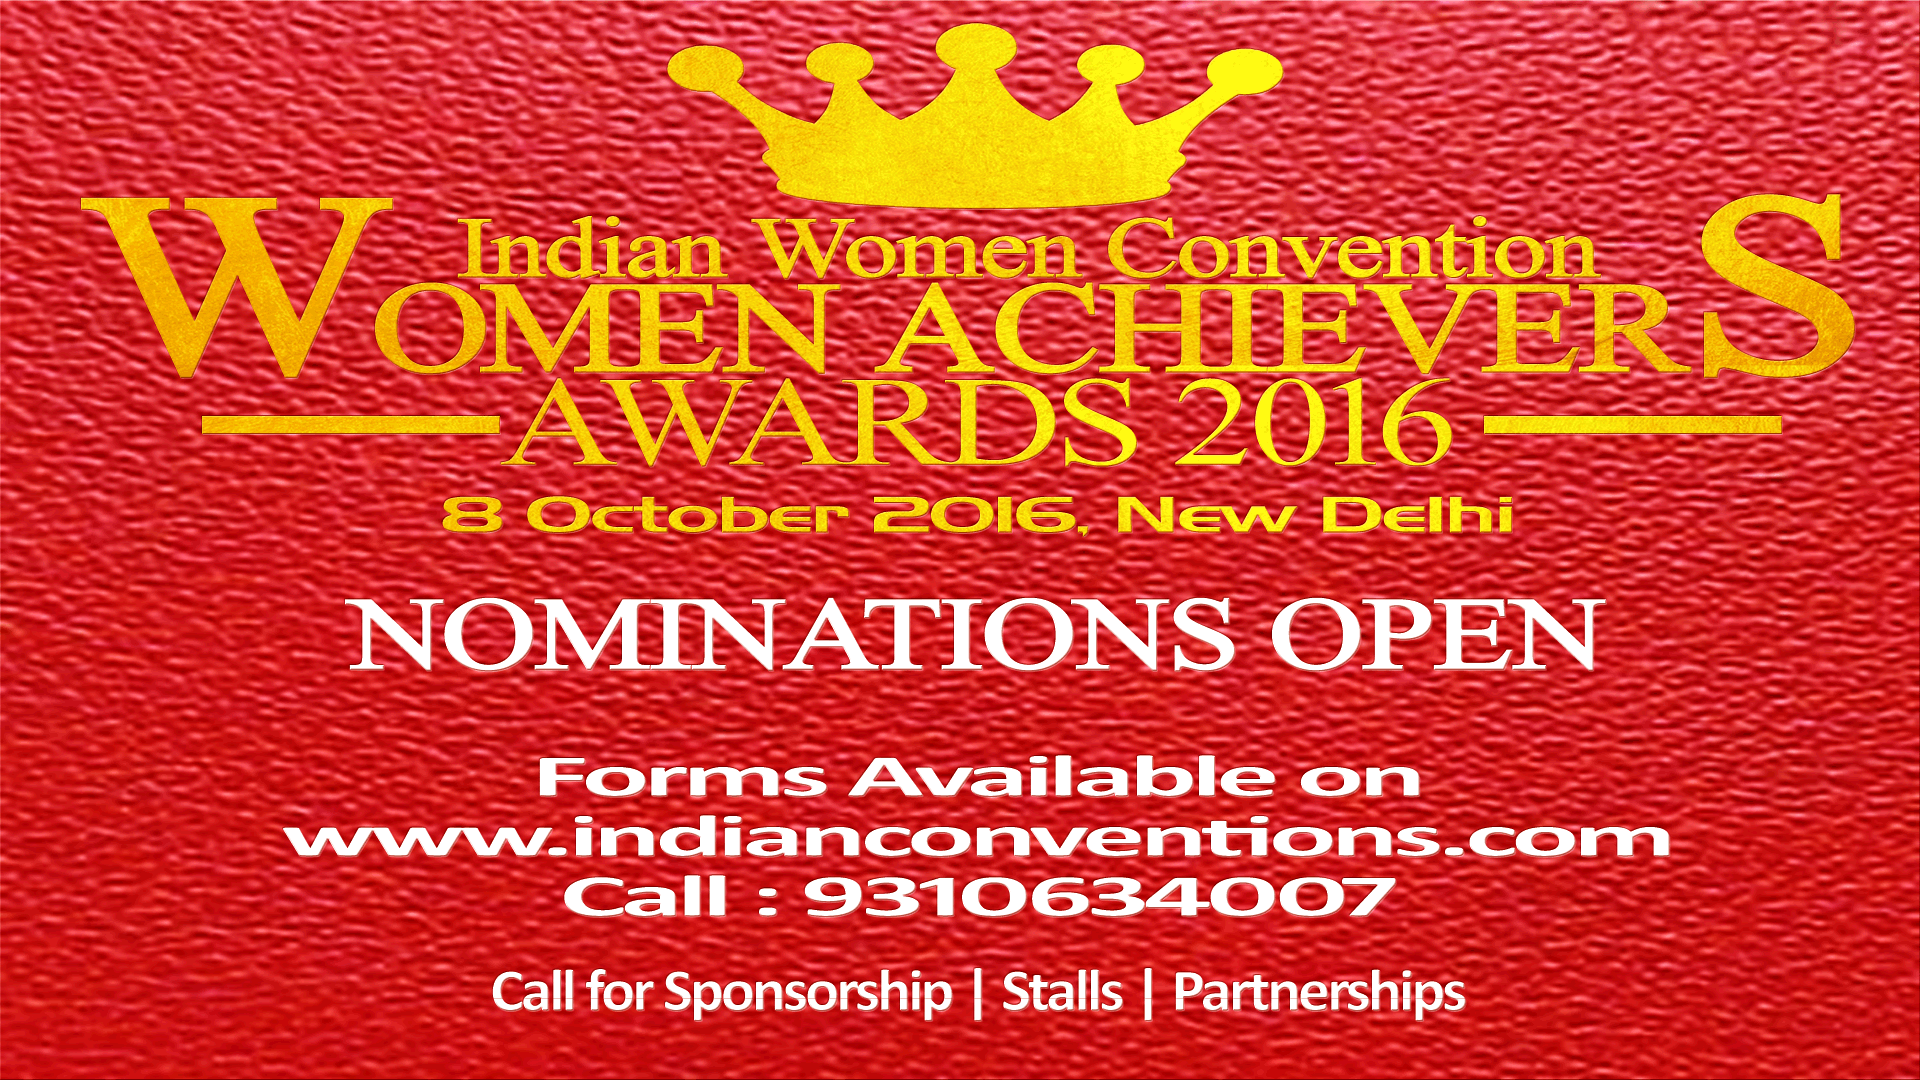 Indian Women Convention 2016